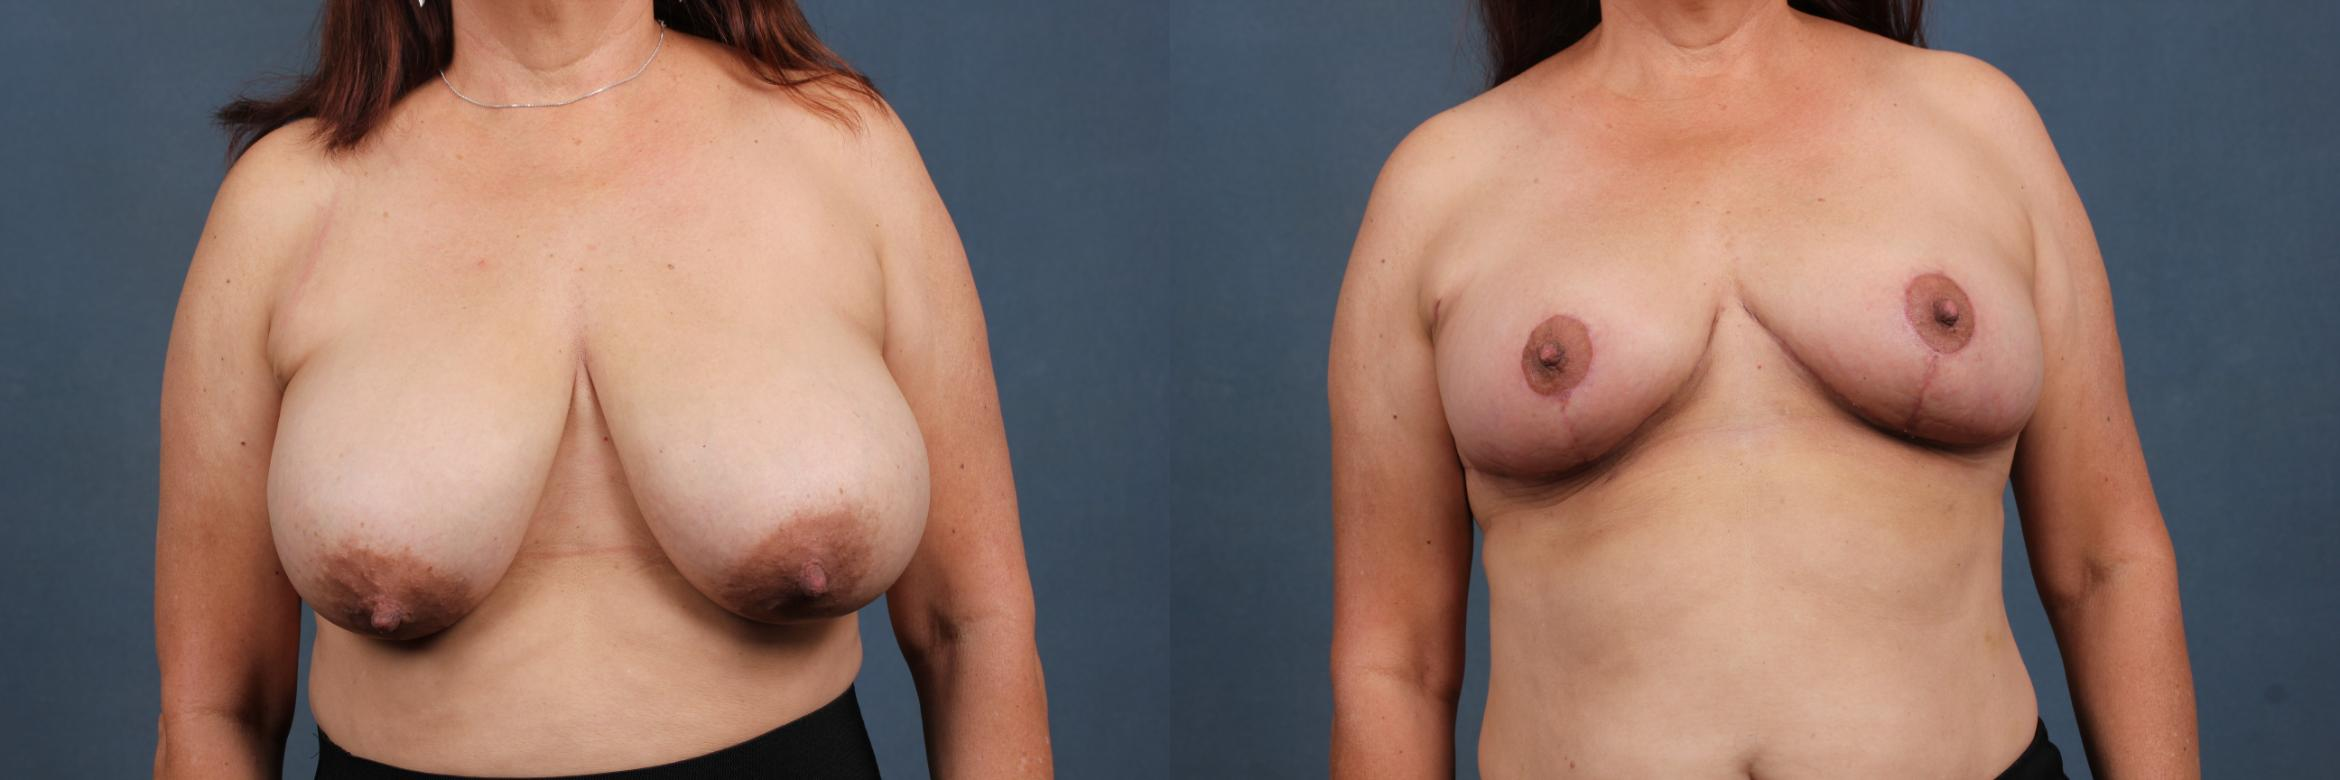 Reduction Case 447 Before & After View #1 | Louisville & Lexington, KY | CaloAesthetics® Plastic Surgery Center